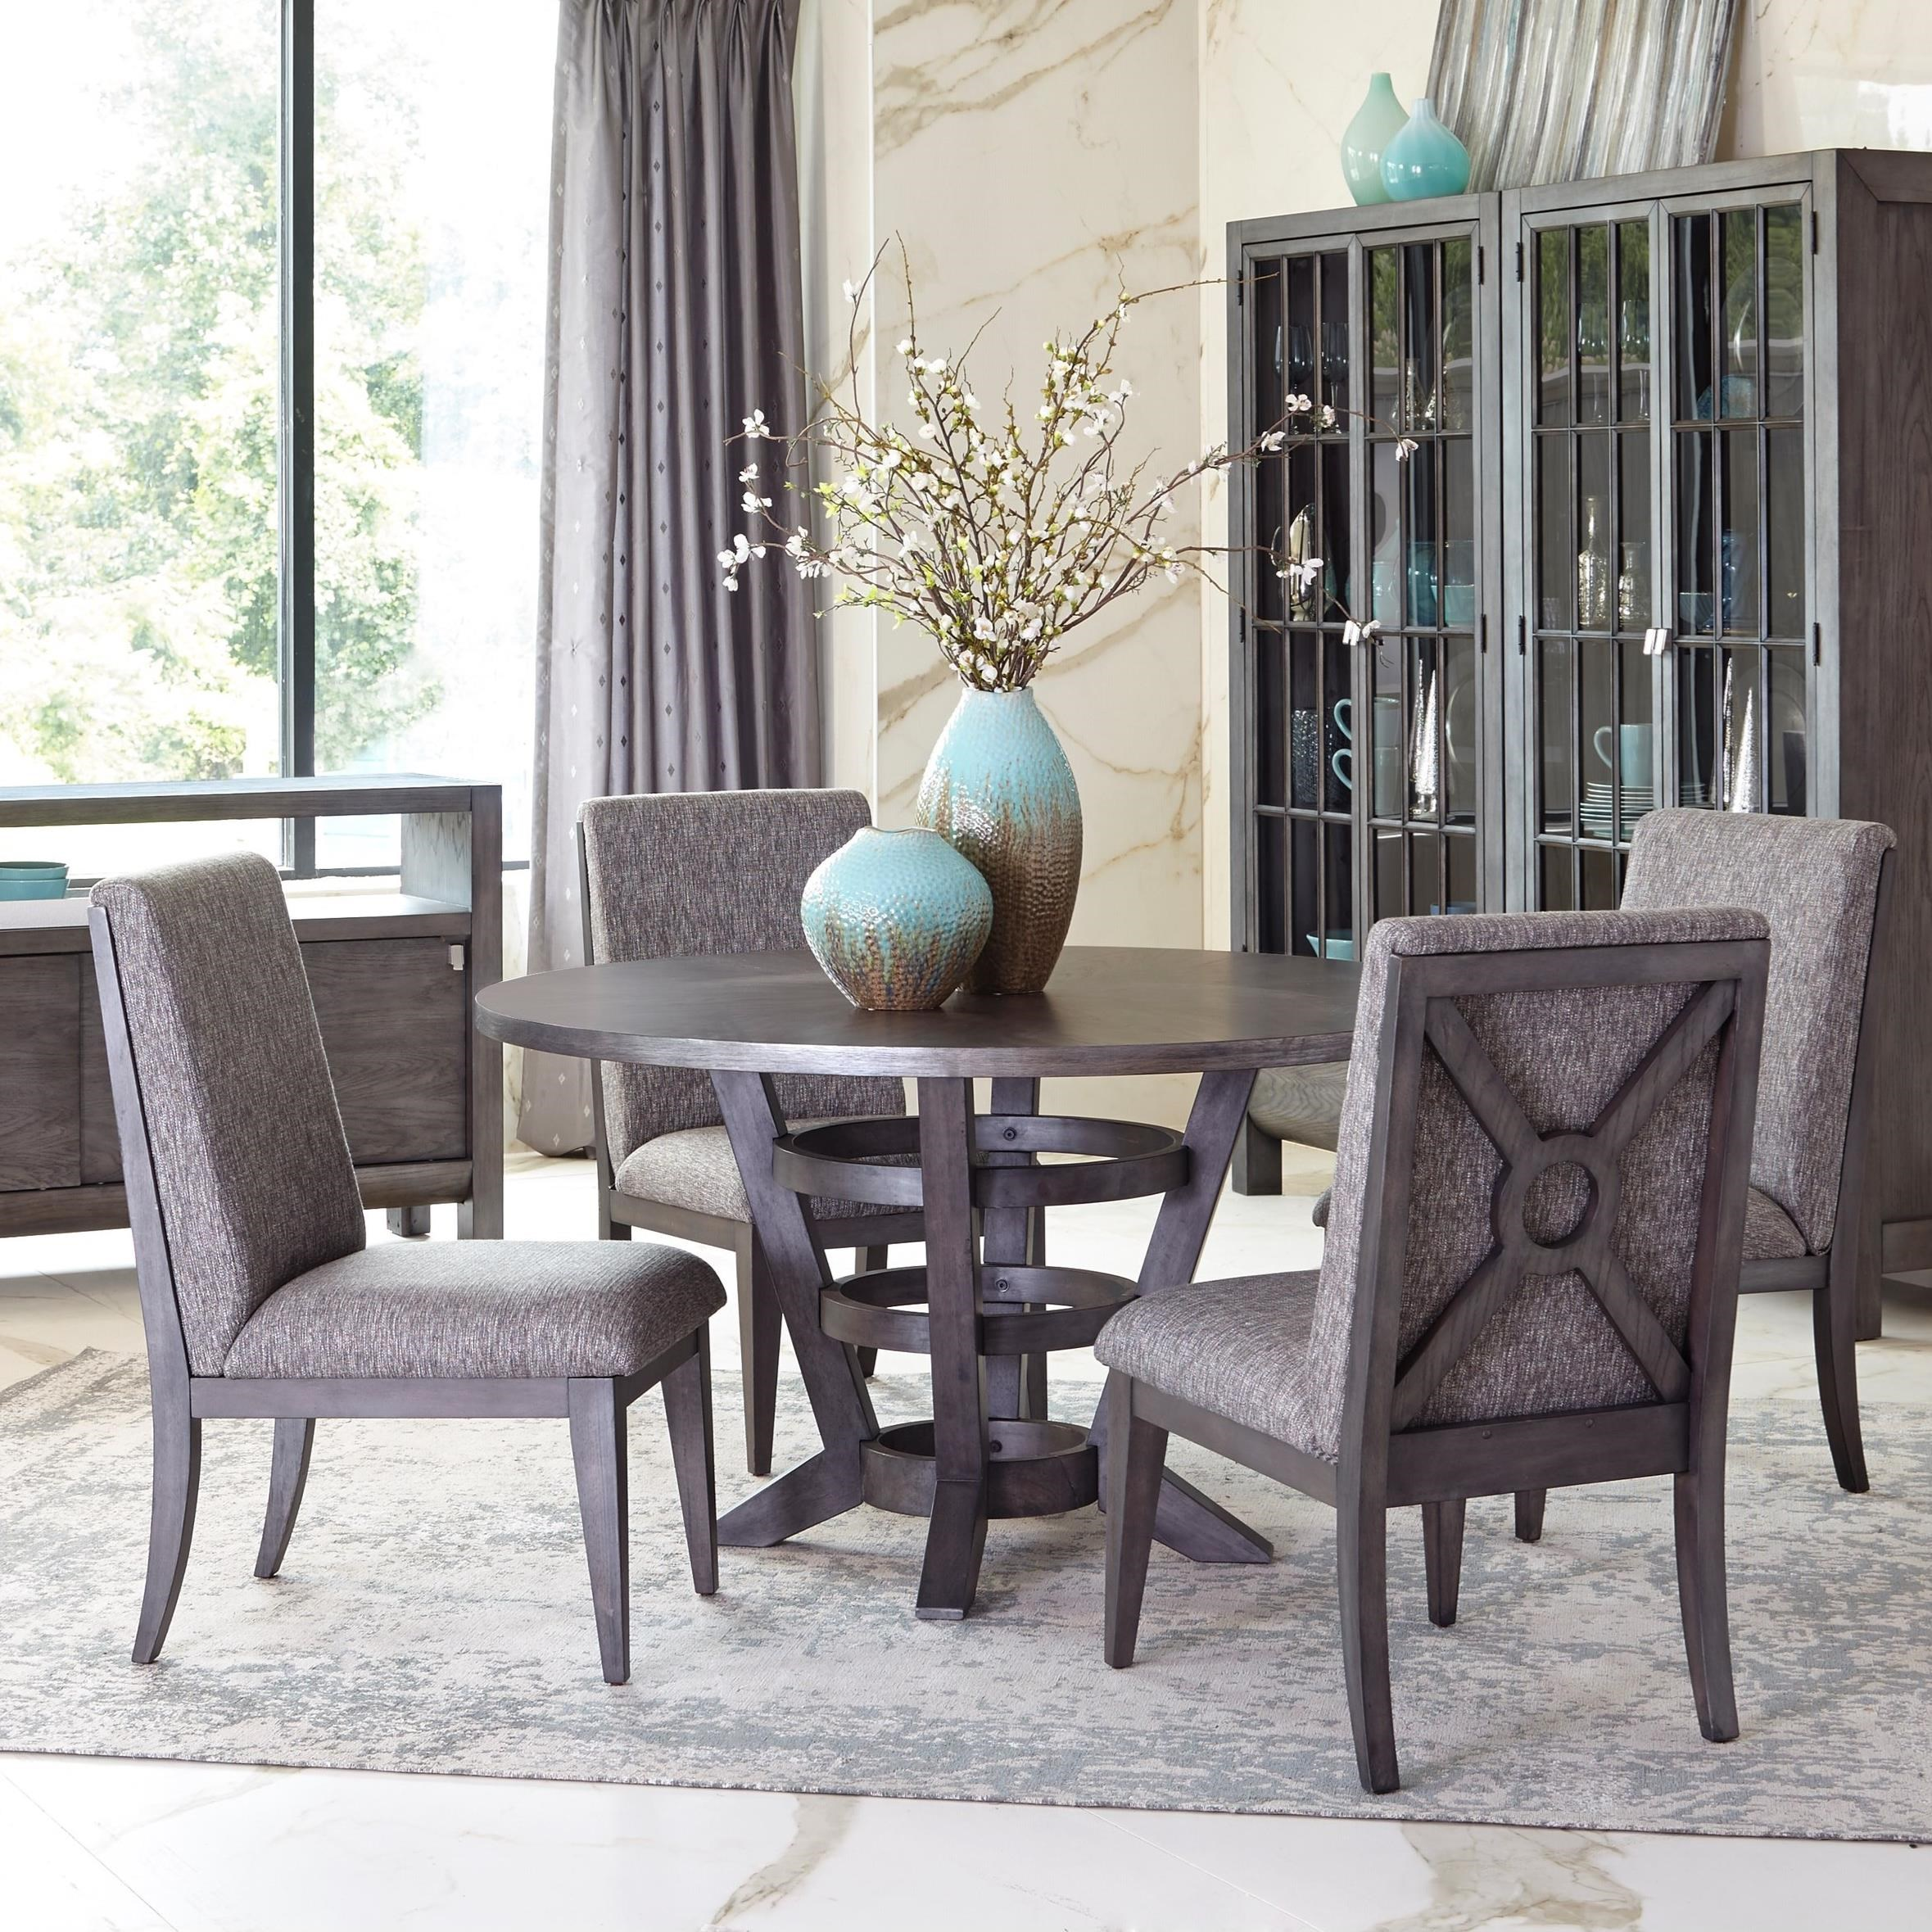 Upholstered Chairs Dining Room omaha dining room set w bench and upholstered chairs grey Hello Im Gone Dining Room Table And Four Upholstered Chairs Set